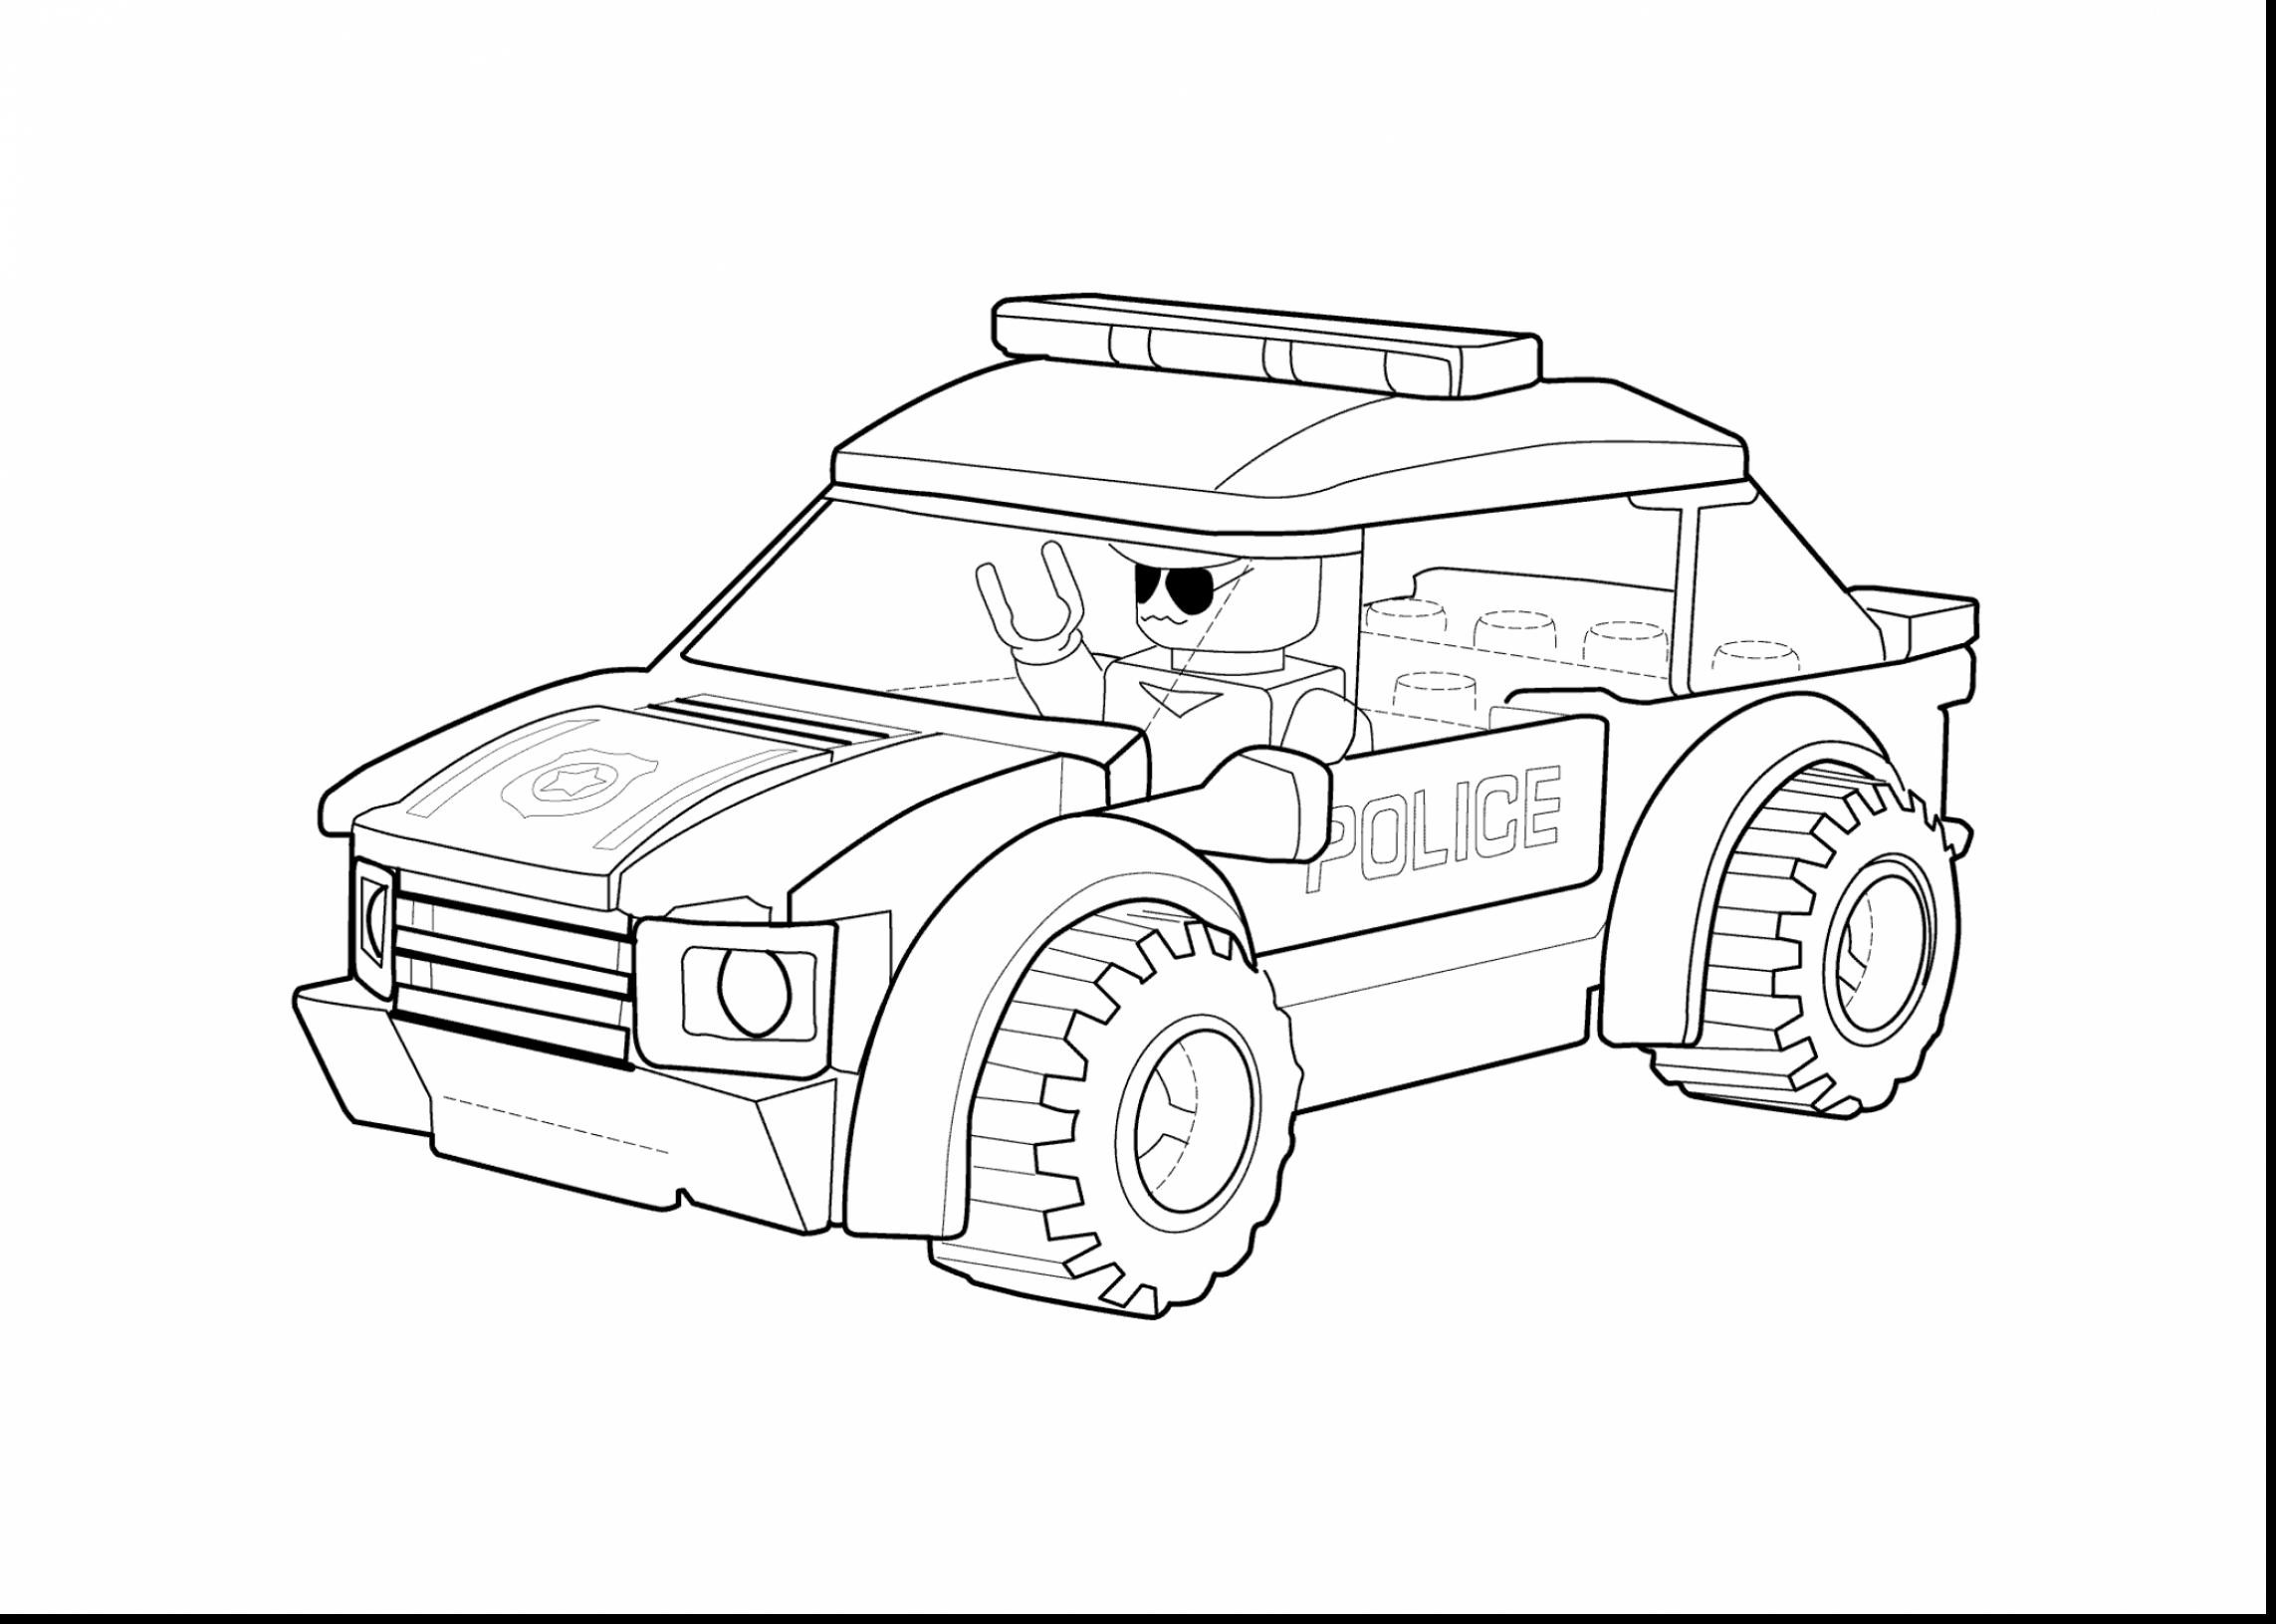 lego police car coloring pages at getdrawings  free download